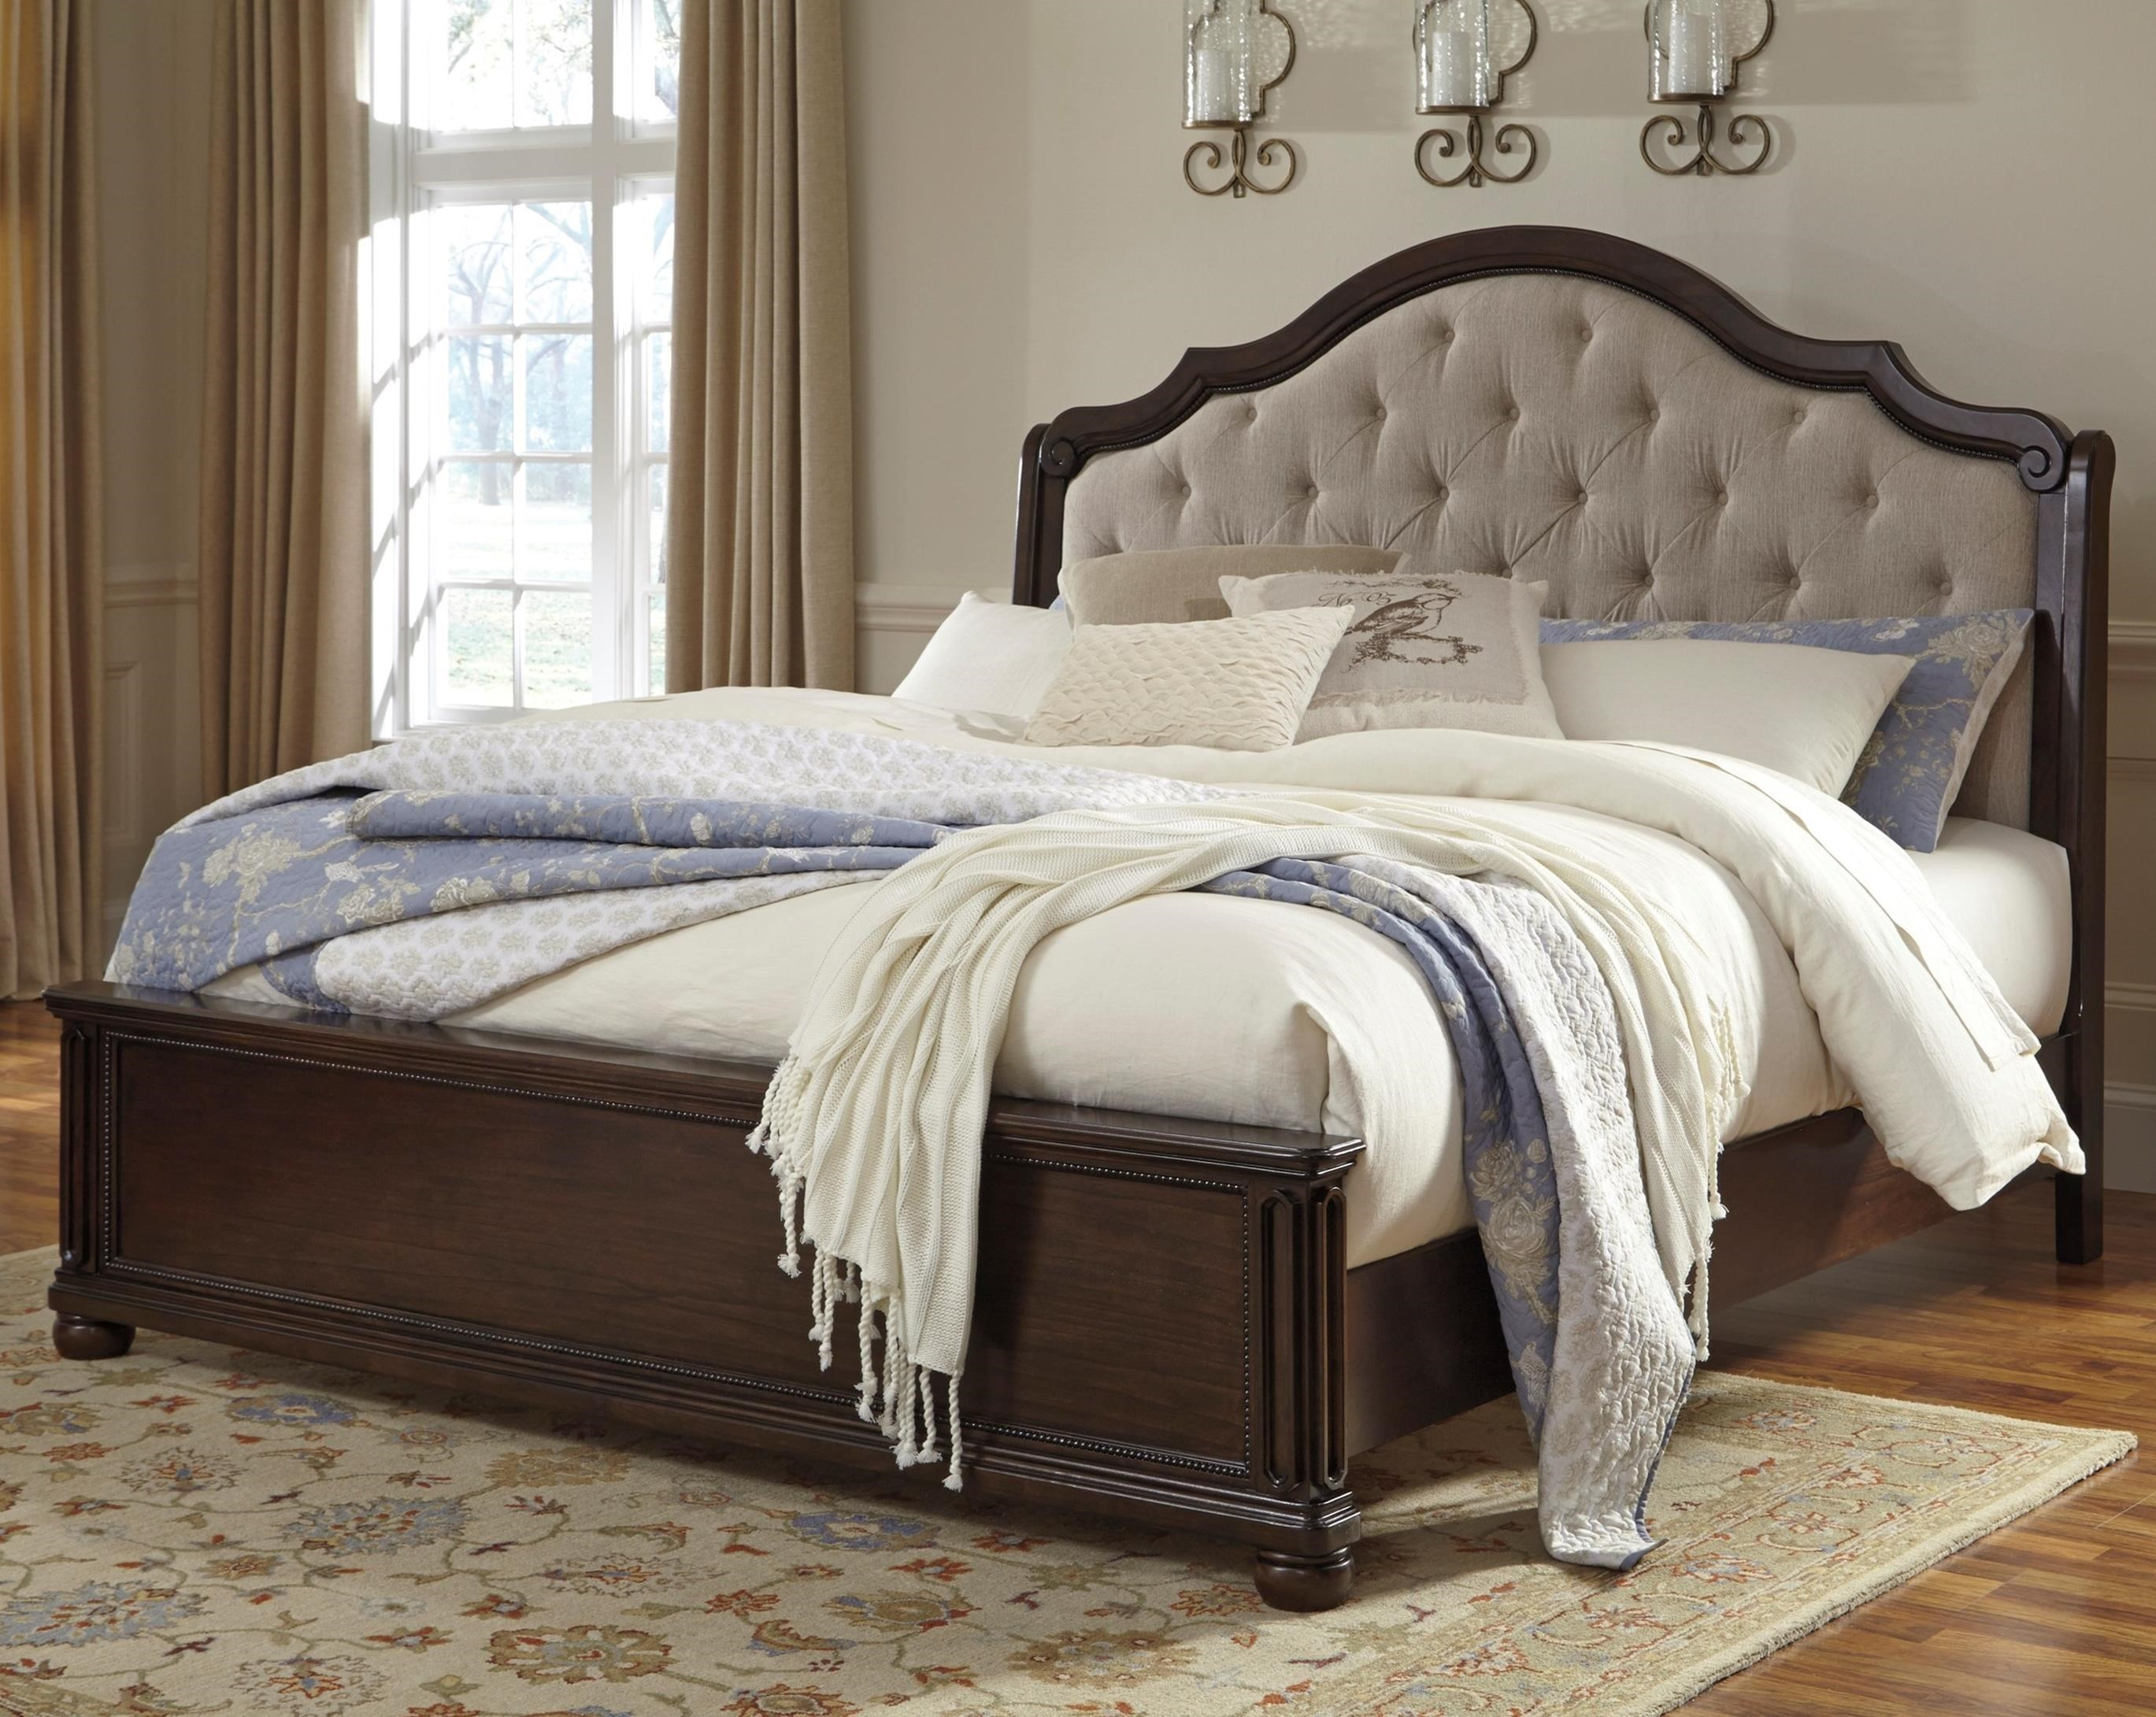 signature design by ashley moluxy queen bed with upholstered sleigh headboard - Upholstered Queen Bed